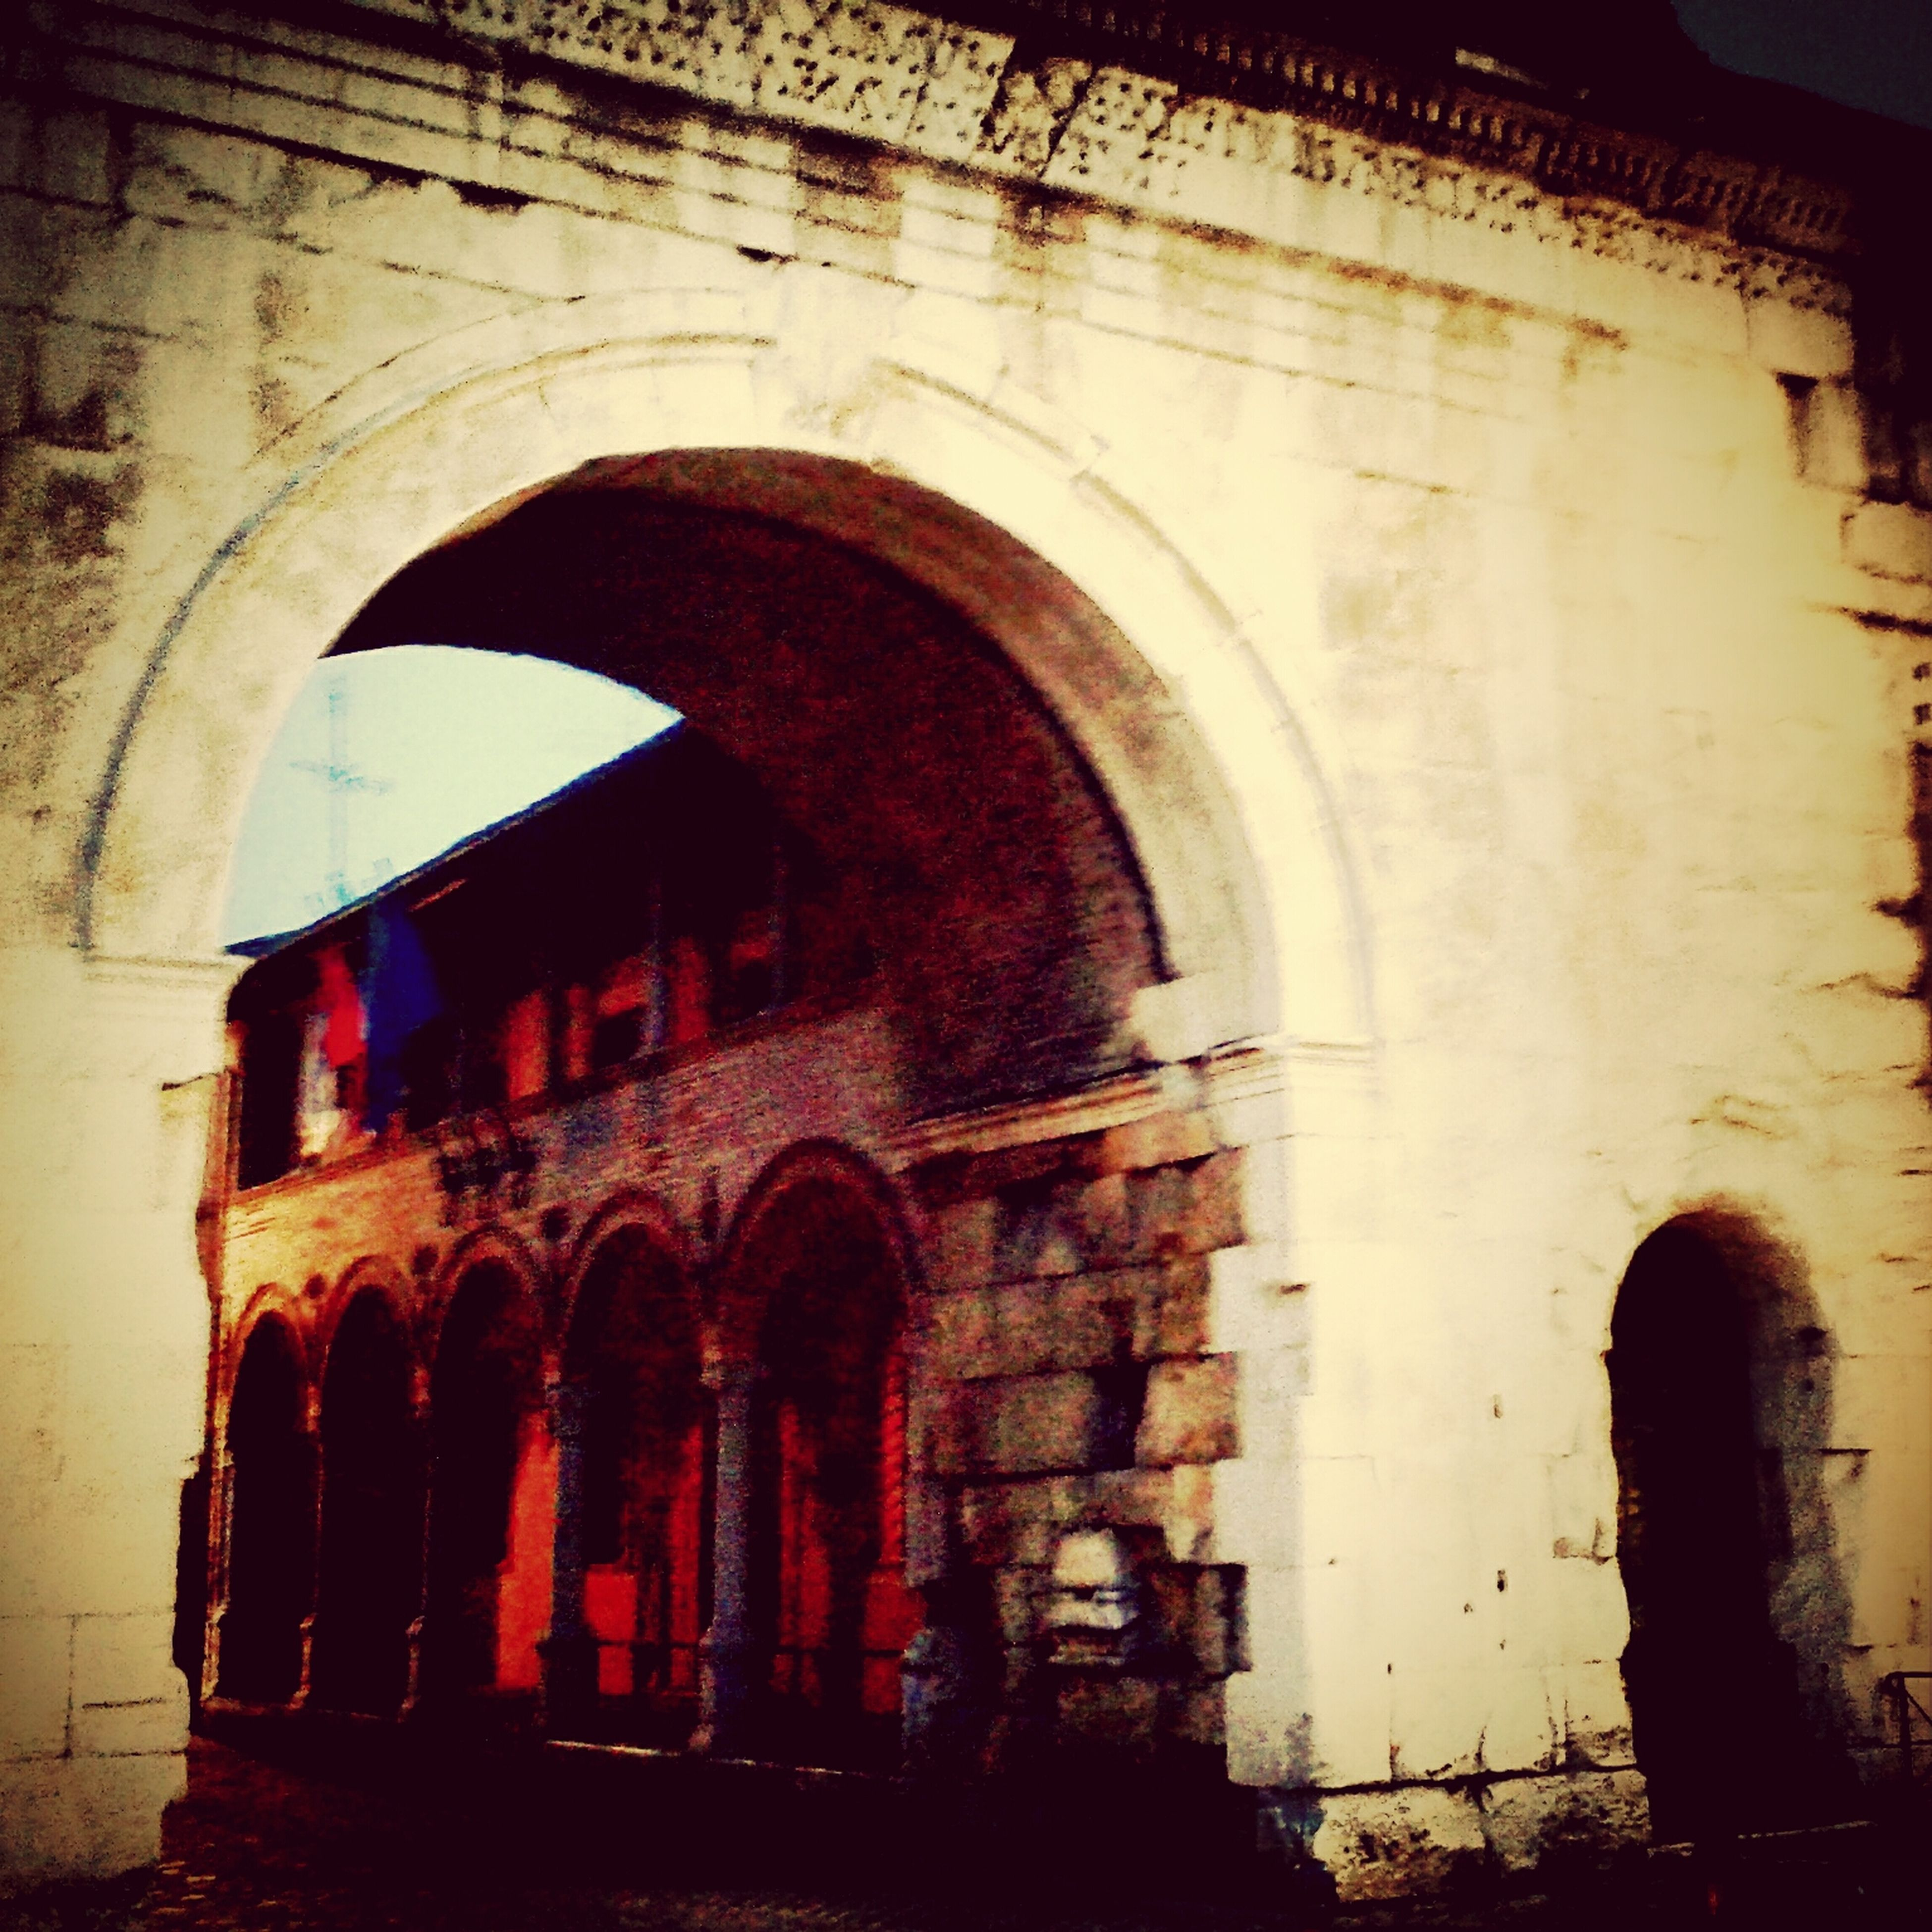 arch, architecture, built structure, building exterior, archway, old, indoors, arched, abandoned, building, window, tunnel, history, entrance, brick wall, weathered, damaged, obsolete, run-down, old ruin